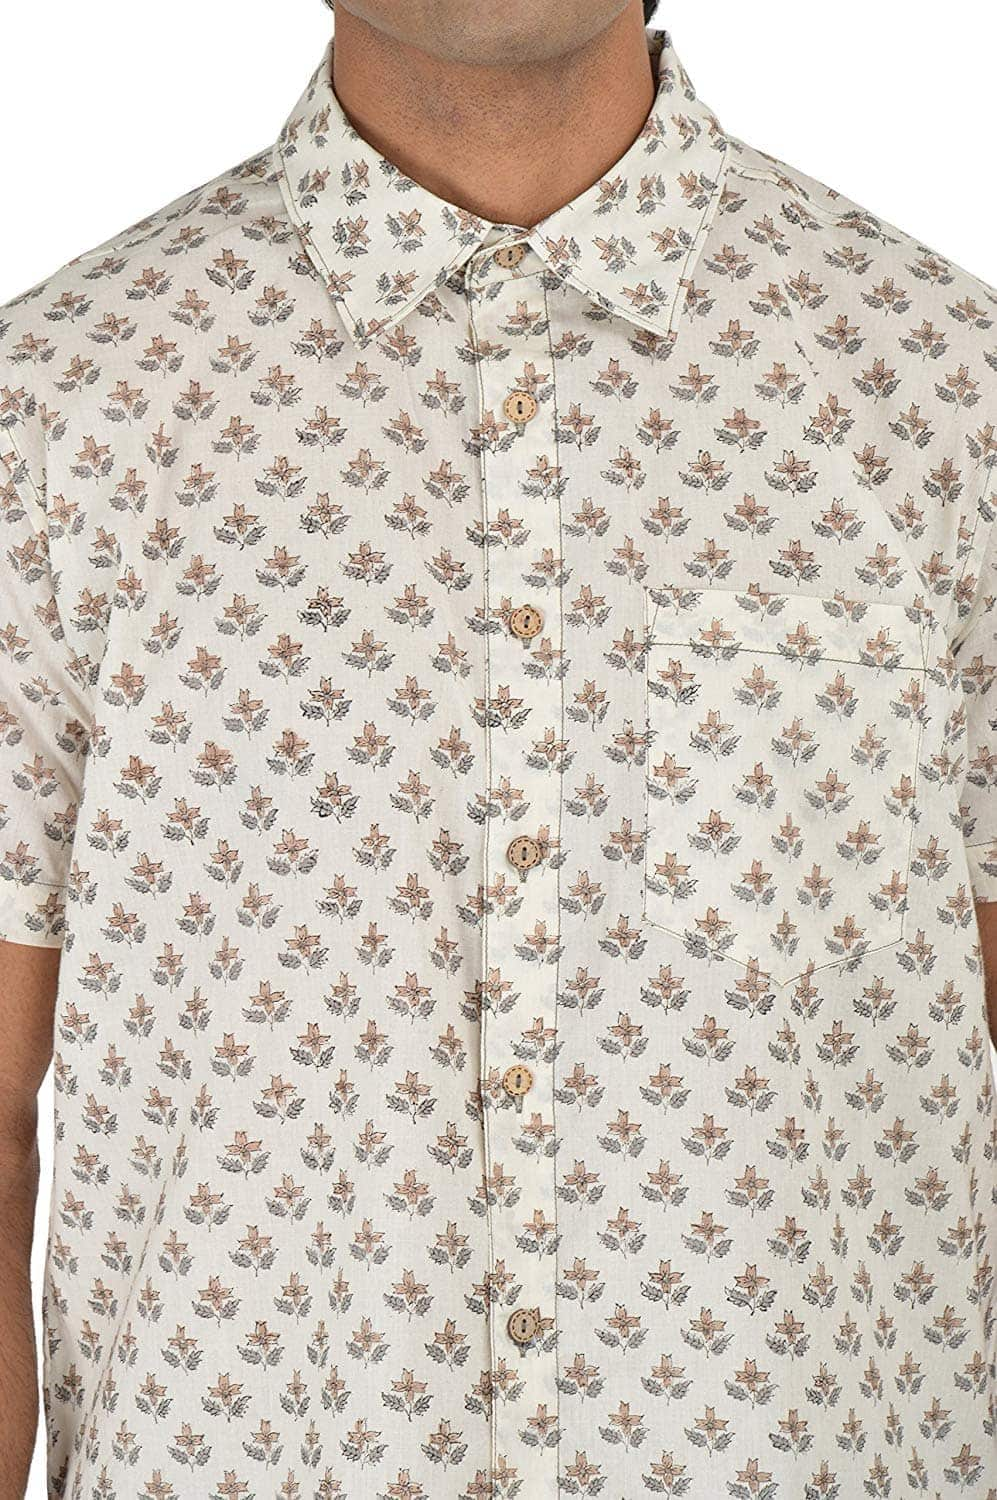 Holiday Shirt - Block Printed - Beige- Shirt